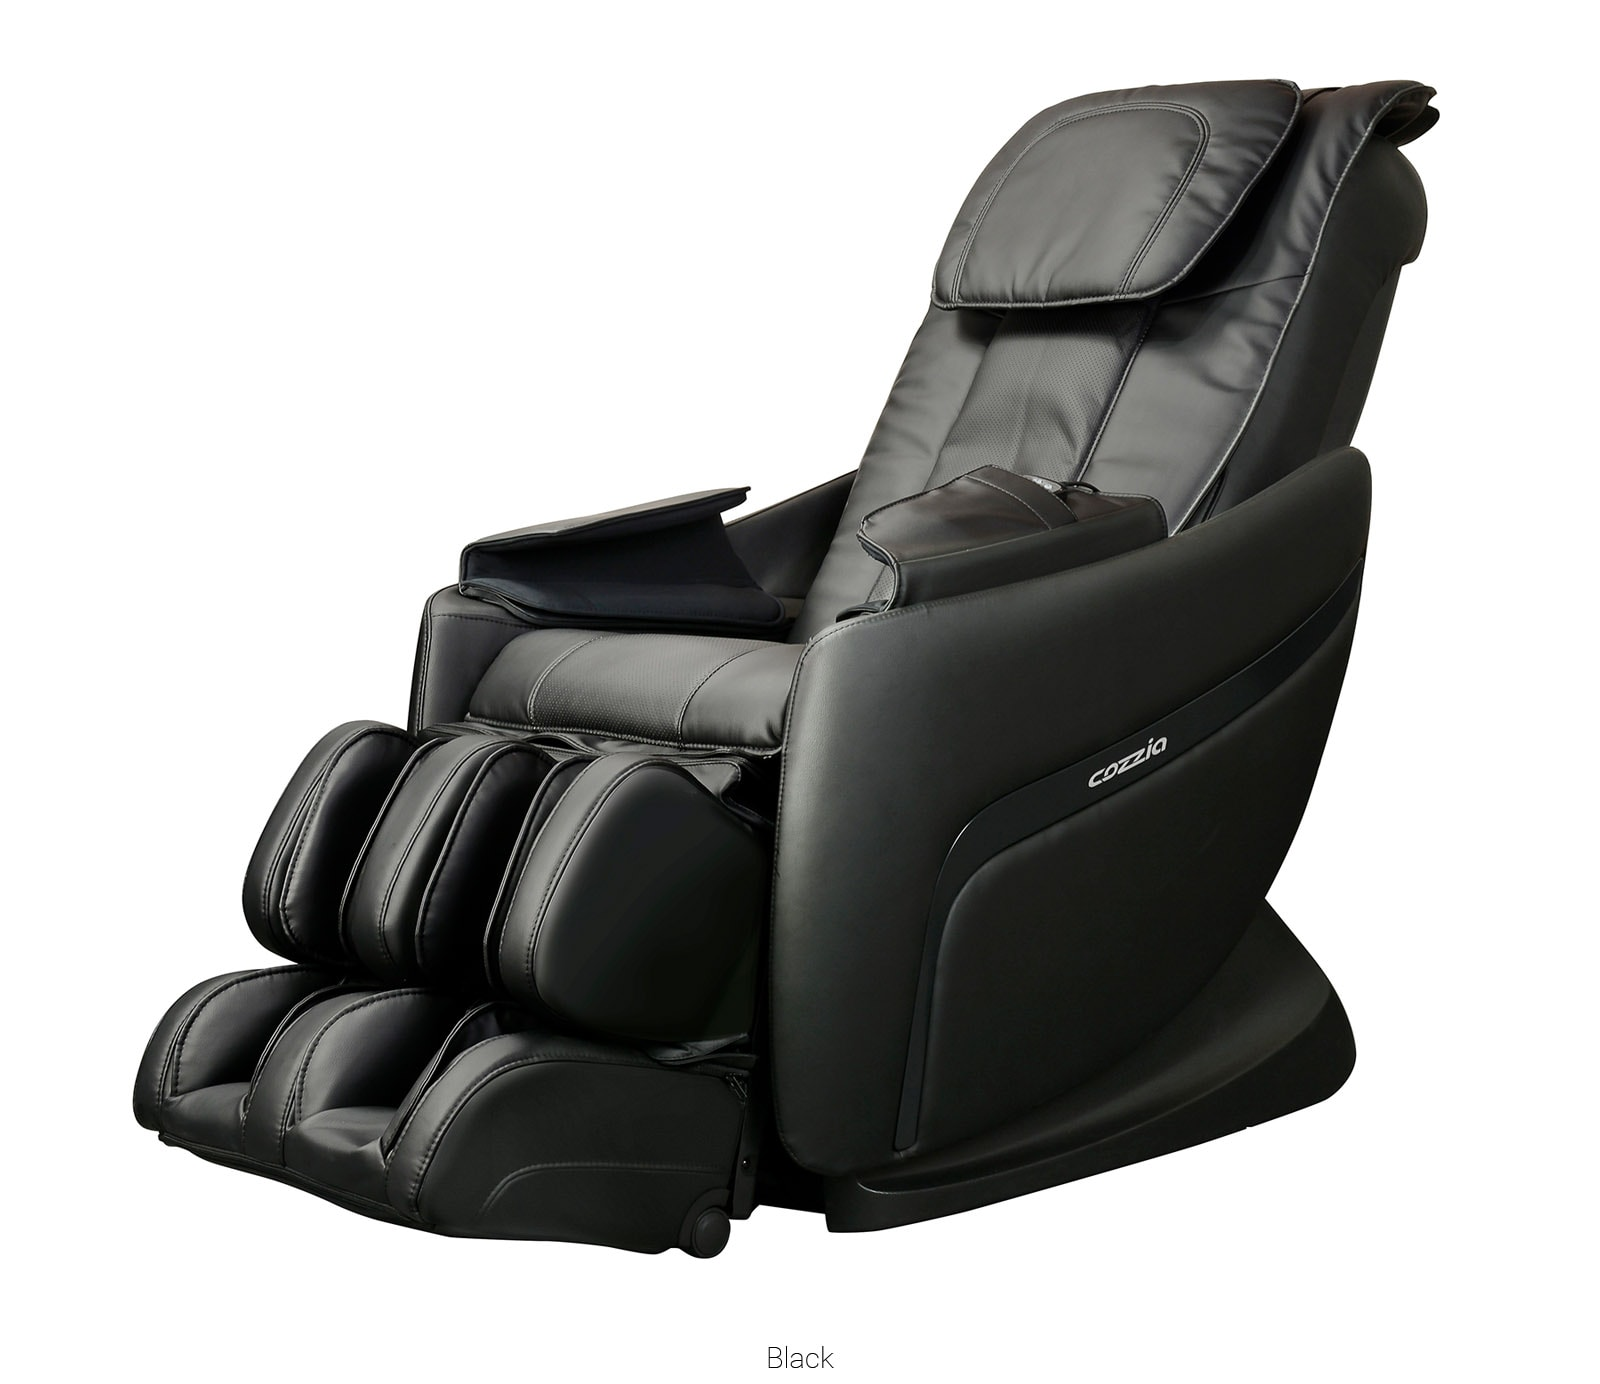 cozzia chairs massage chair qi